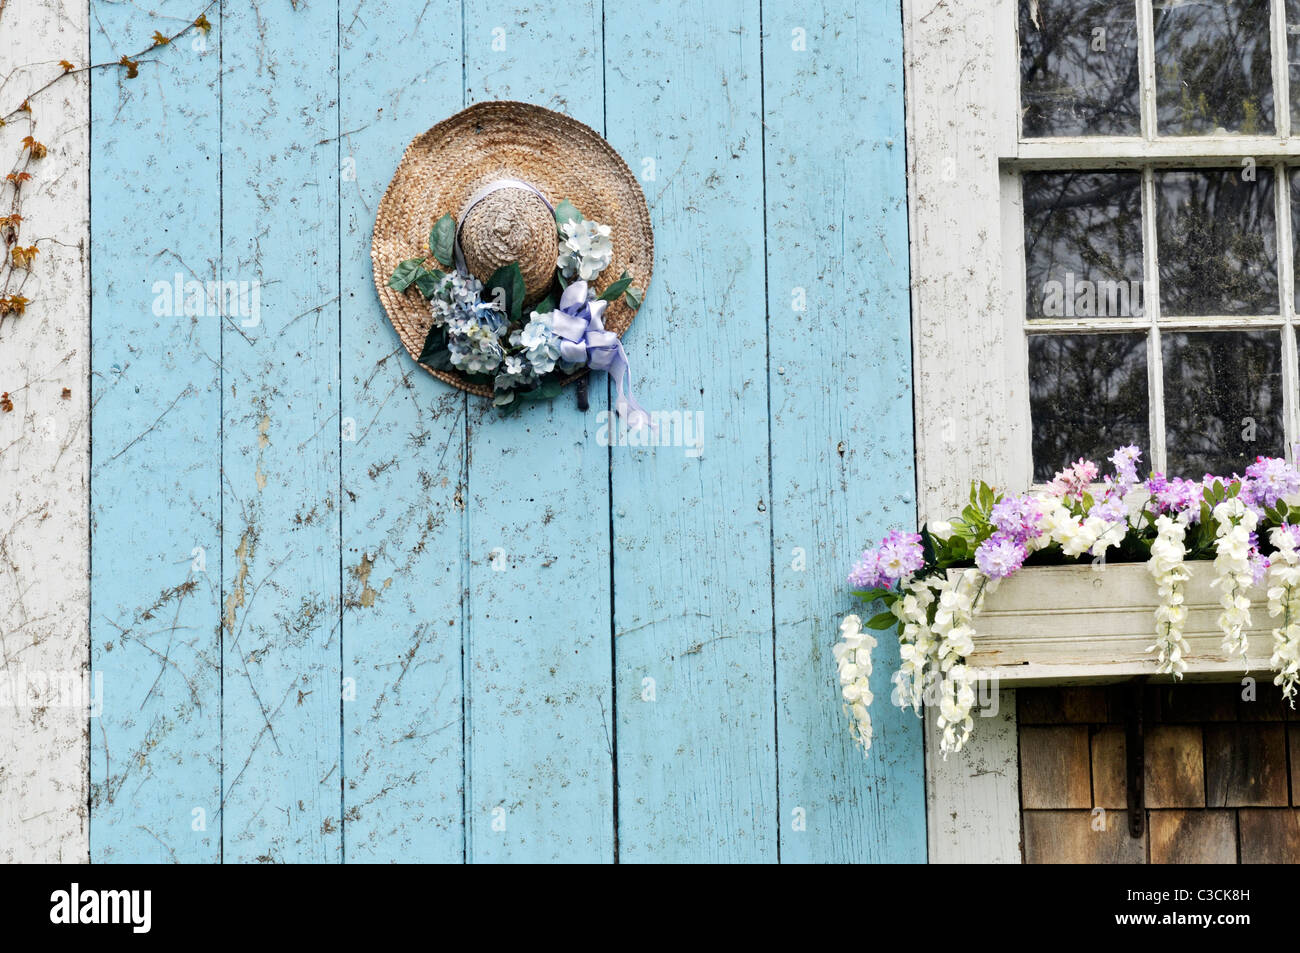 Closeup of picturesque Cape Cod barn door with flowering window box and decorated straw hat on door. USA - Stock Image